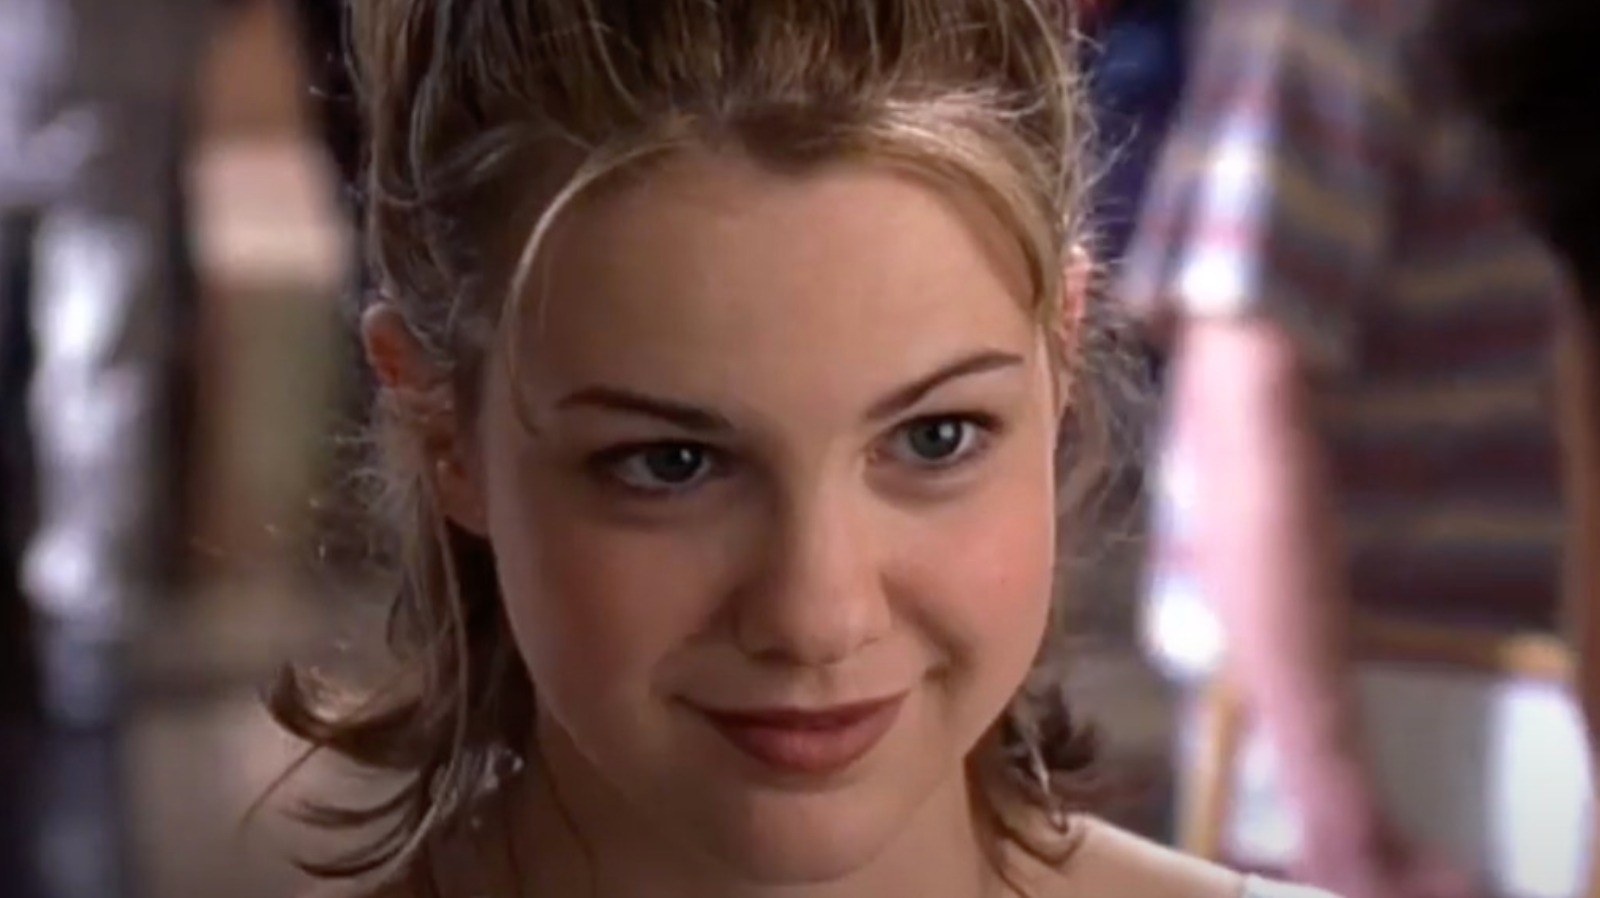 What Happened To The Actress Who Plays Bianca In 10 Things I Hate About You?